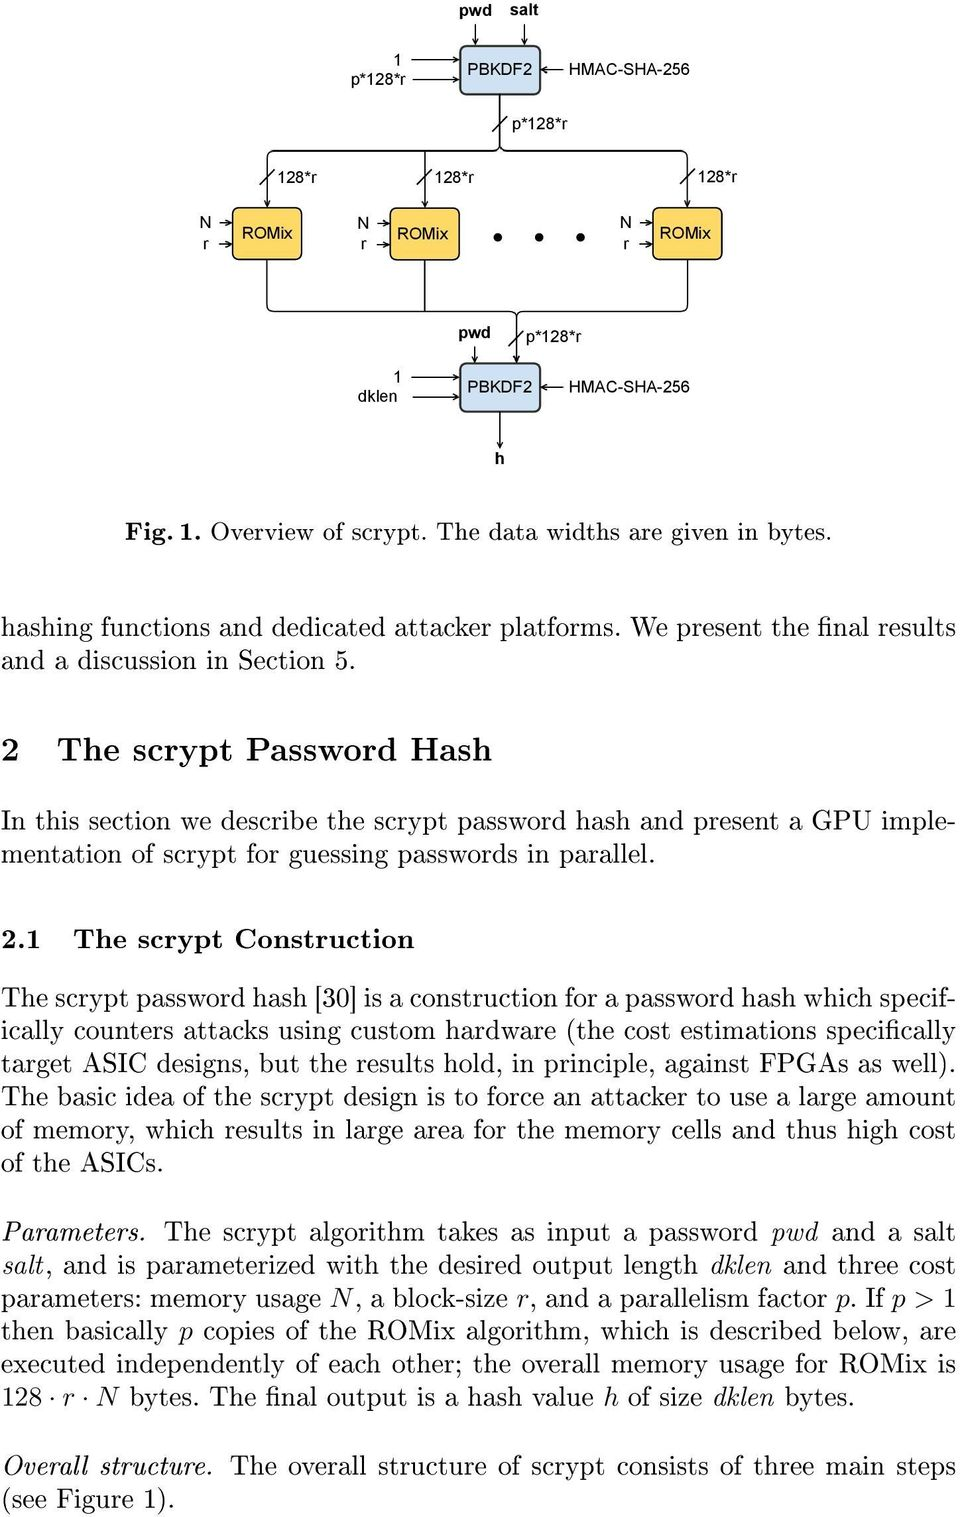 2 The scrypt Password Hash In this section we describe the scrypt password hash and present a GPU implementation of scrypt for guessing passwords in parallel. 2.